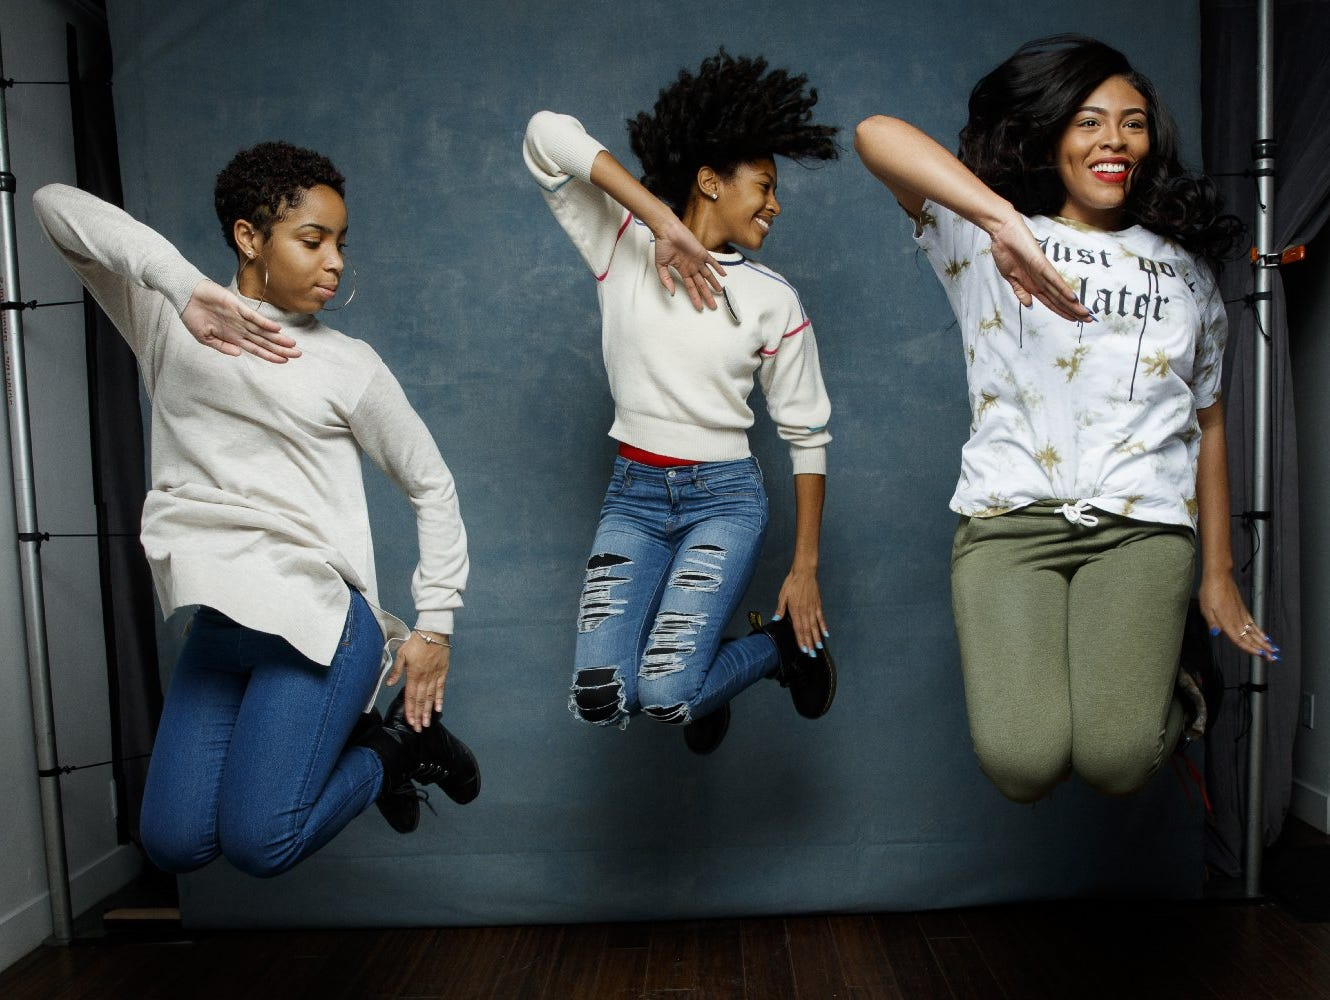 STEP is the true-life story of a girls' high-school step dance team. Enter to win 7/17-8/2